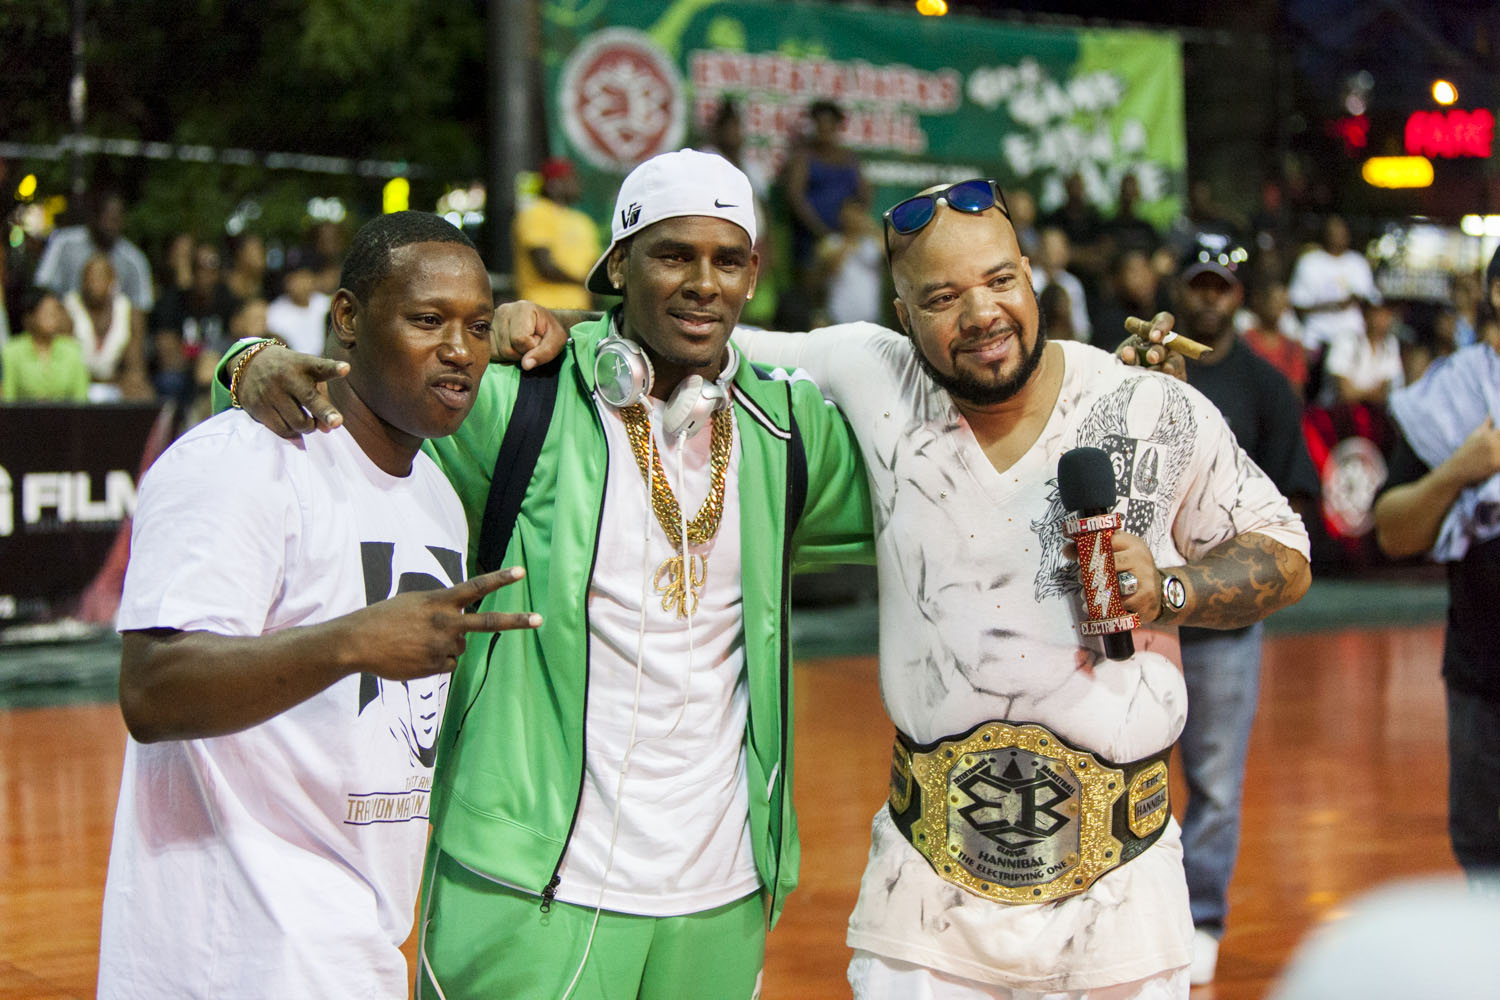 Multi-platinum recording artist R. Kelly showed up to Holcombe Rucker Park to take in the streetball action.